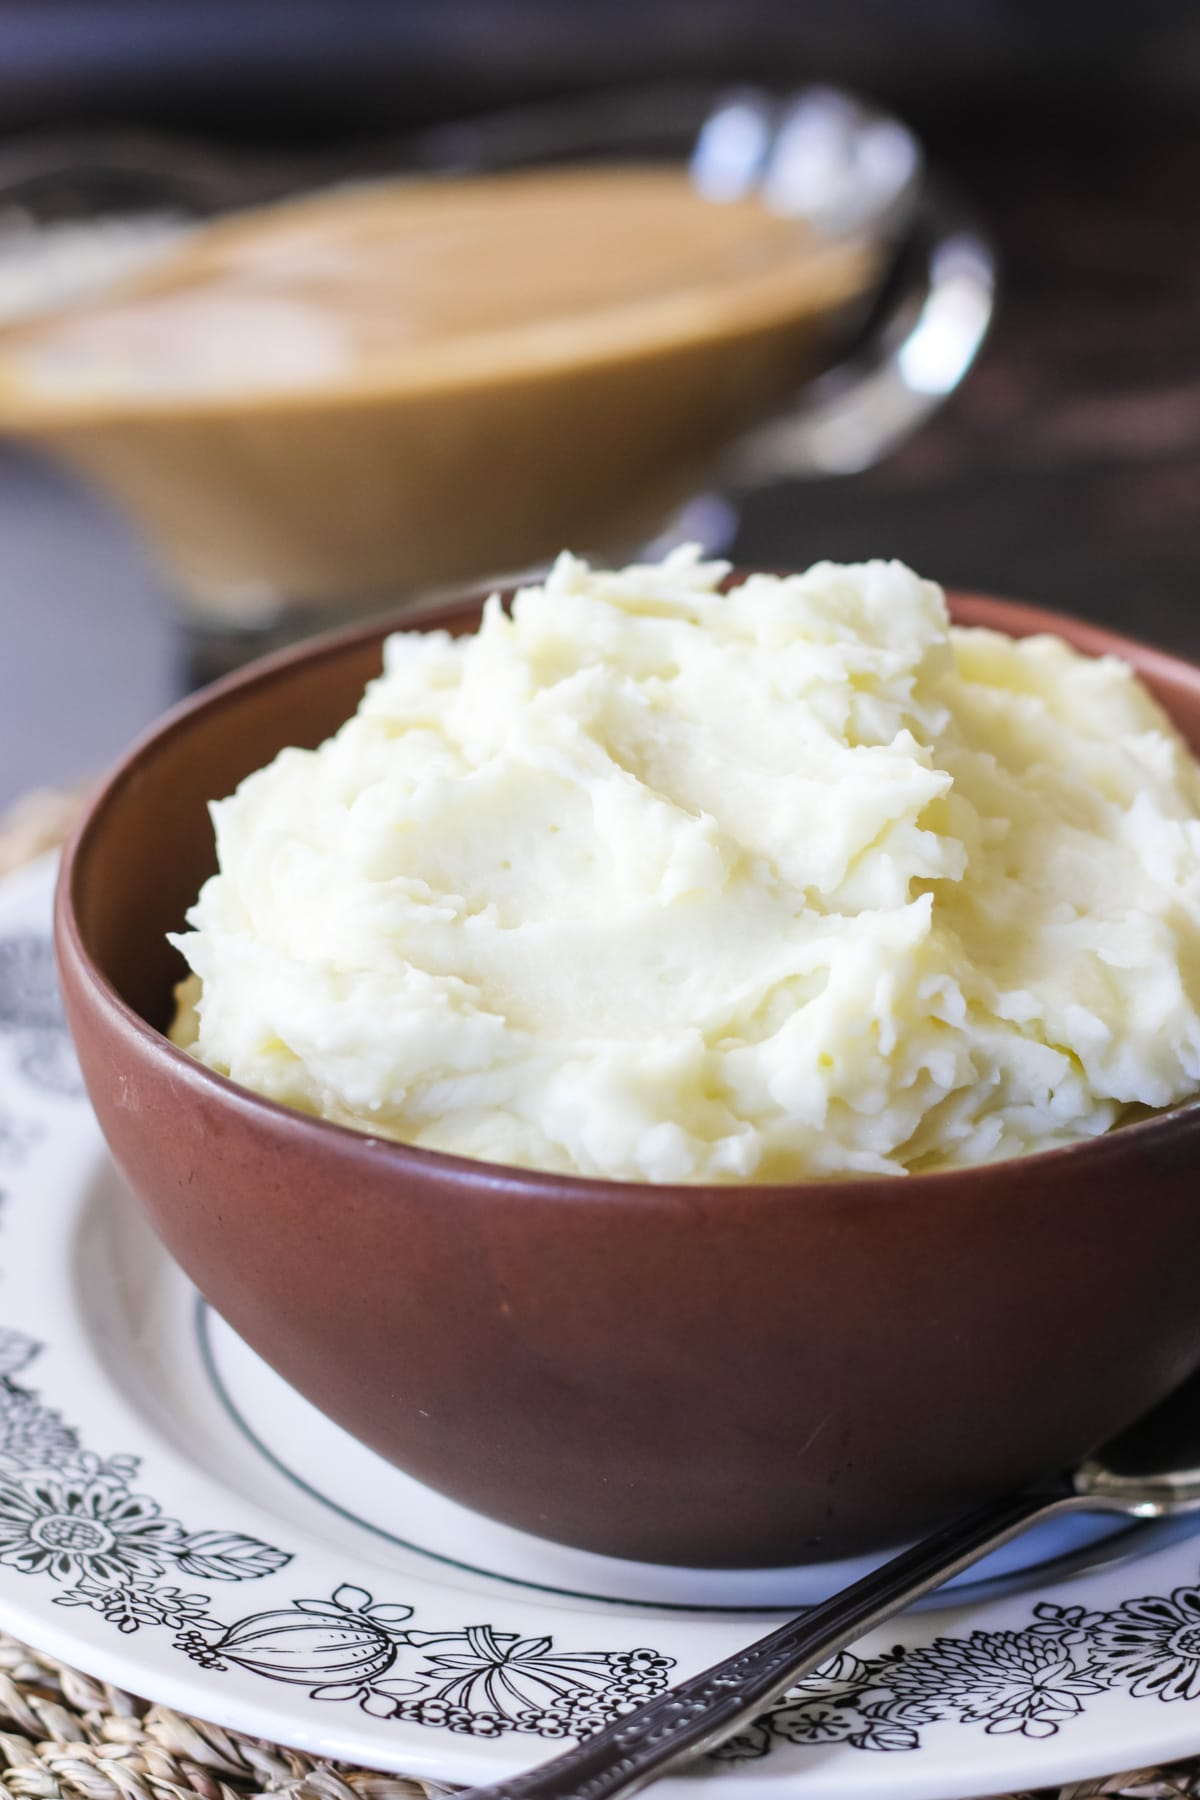 a brown bowl filled with creamy Mashed Potatoes. in the background is a gravy boat filled with gravy